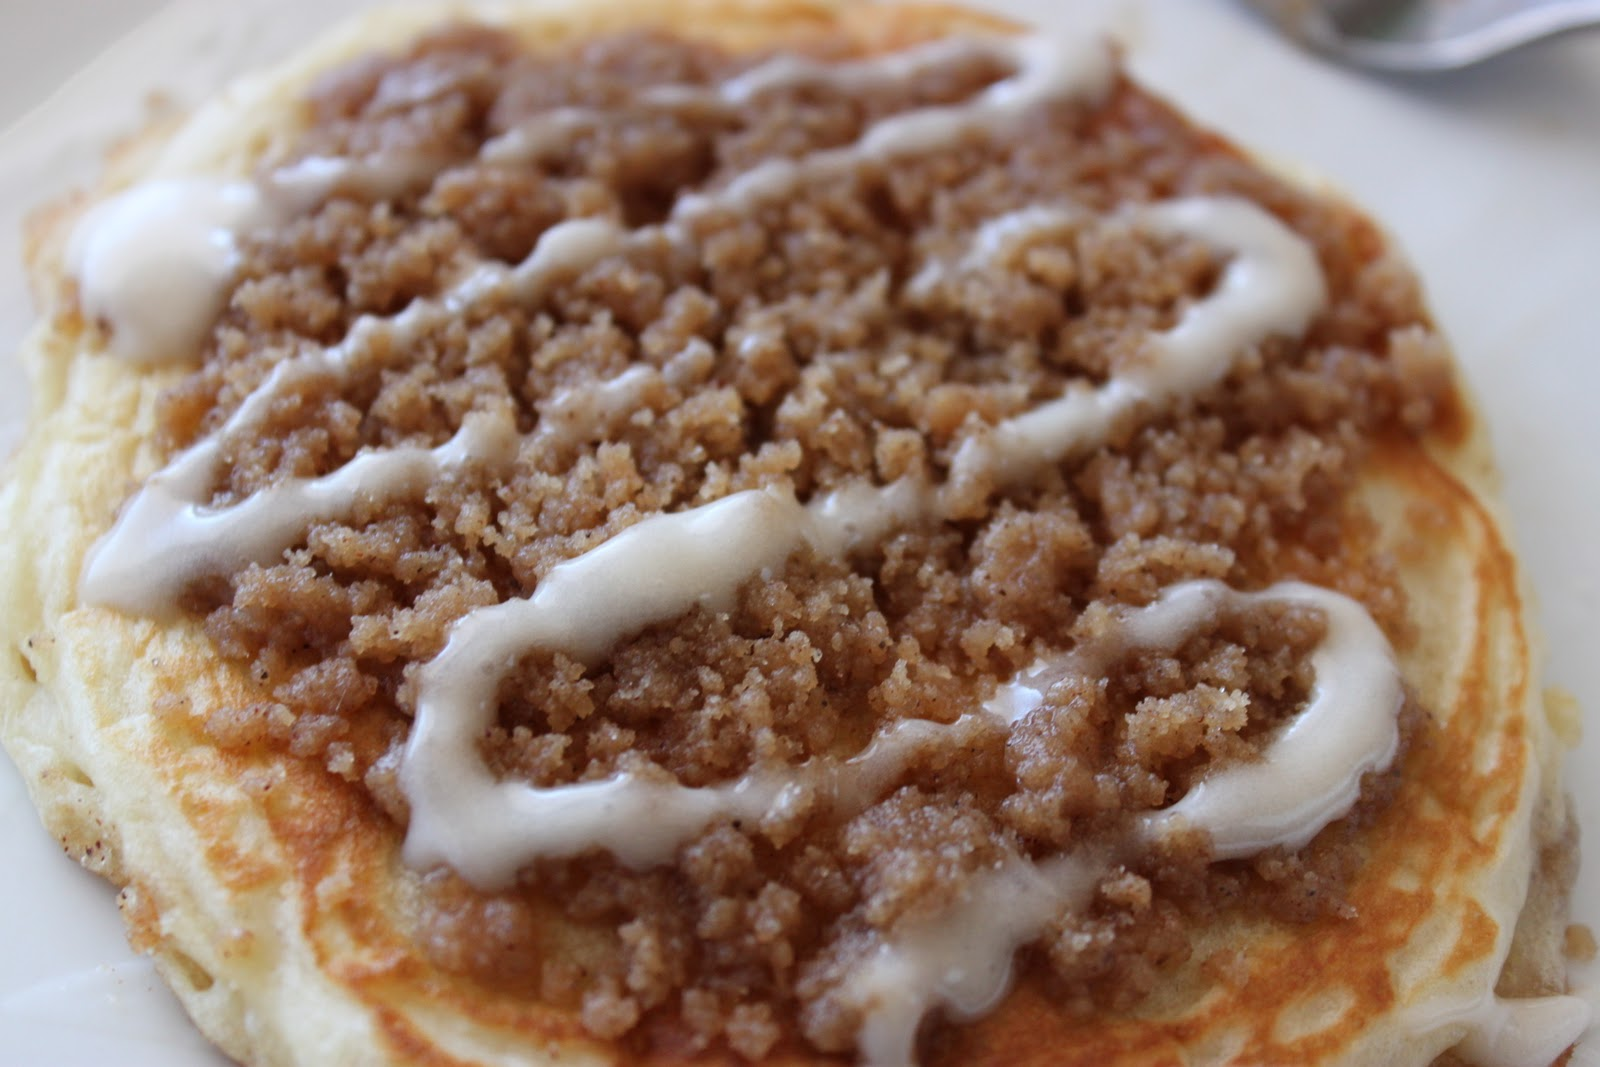 Cooper Cookin': Cinnamon Streusel Pancakes with Cream Cheese Drizzle